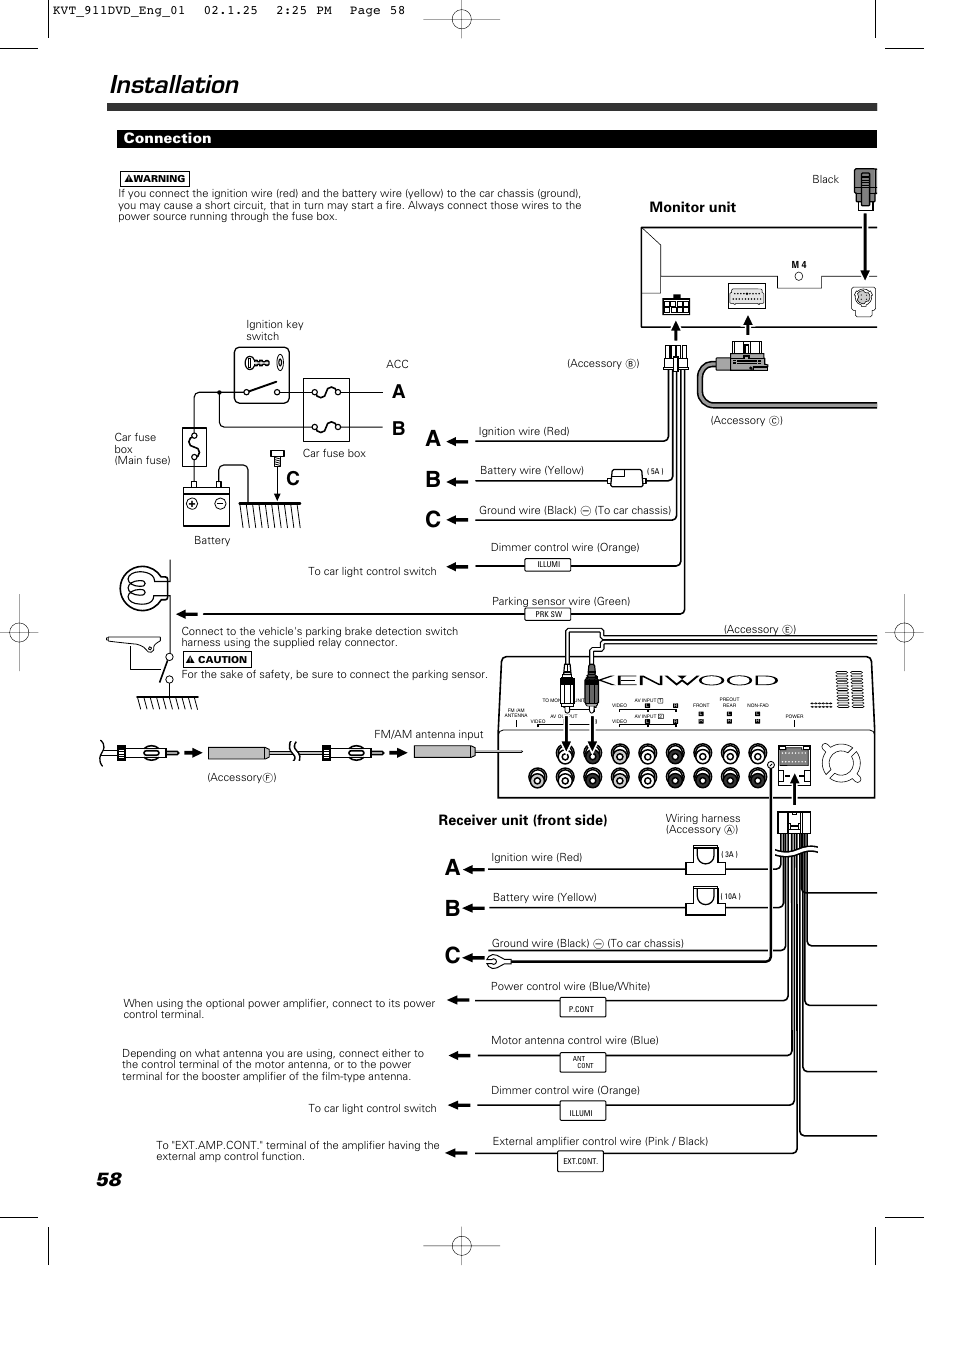 kenwood kvt 516 wiring harness diagram kenwood wiring